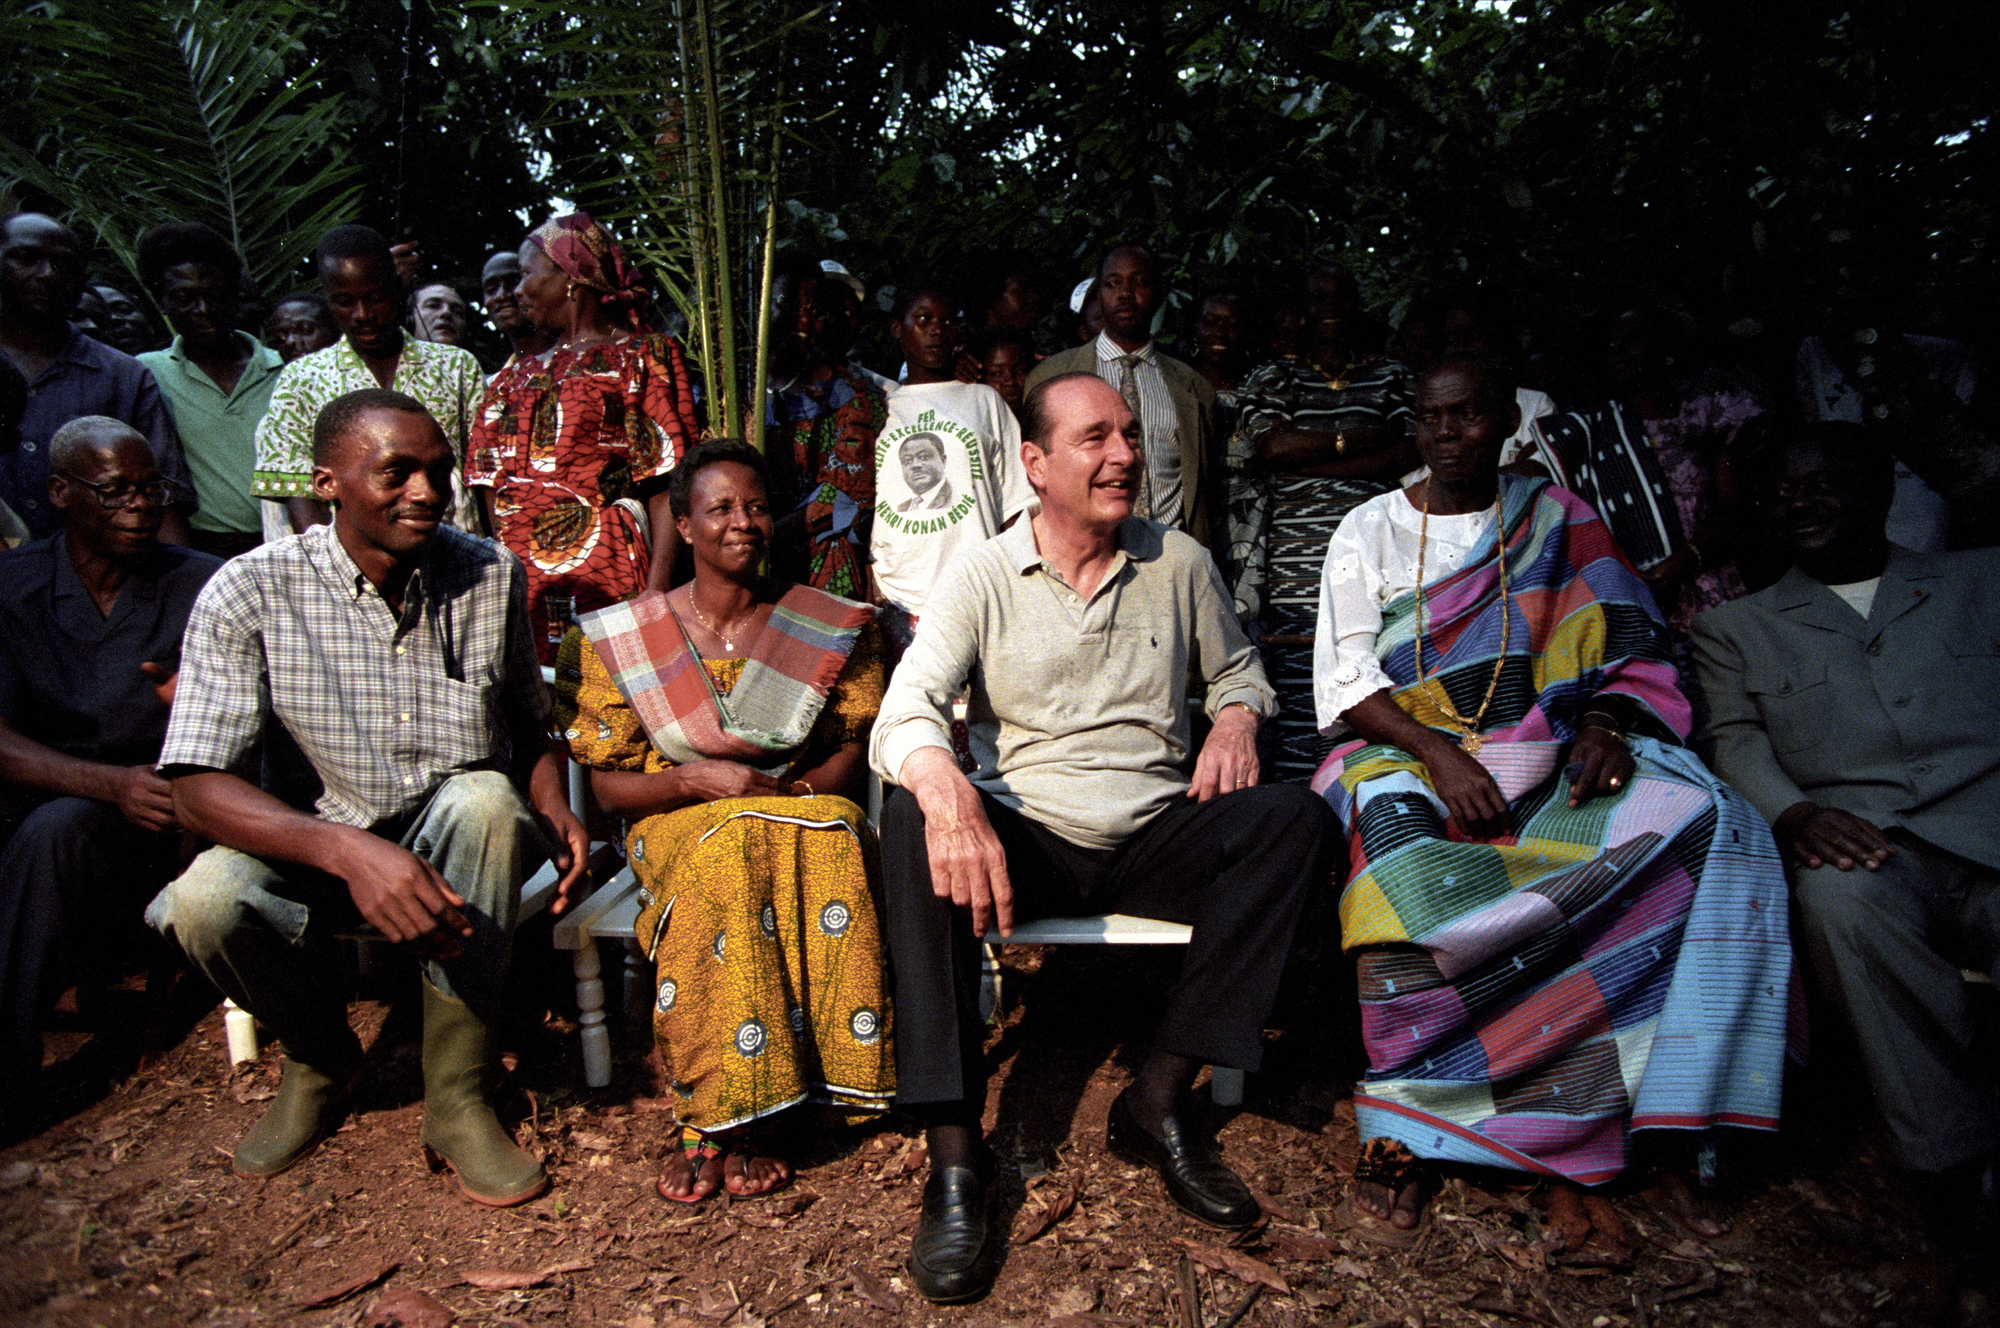 Cote d' Ivoire1995, French president Jacques Chirac on an official visit to the Cote d'Ivoire (Ivory Coast) meeting with residents of a small village in the midst of the jungle., (Photo by Francis Apesteguy/Getty Images)